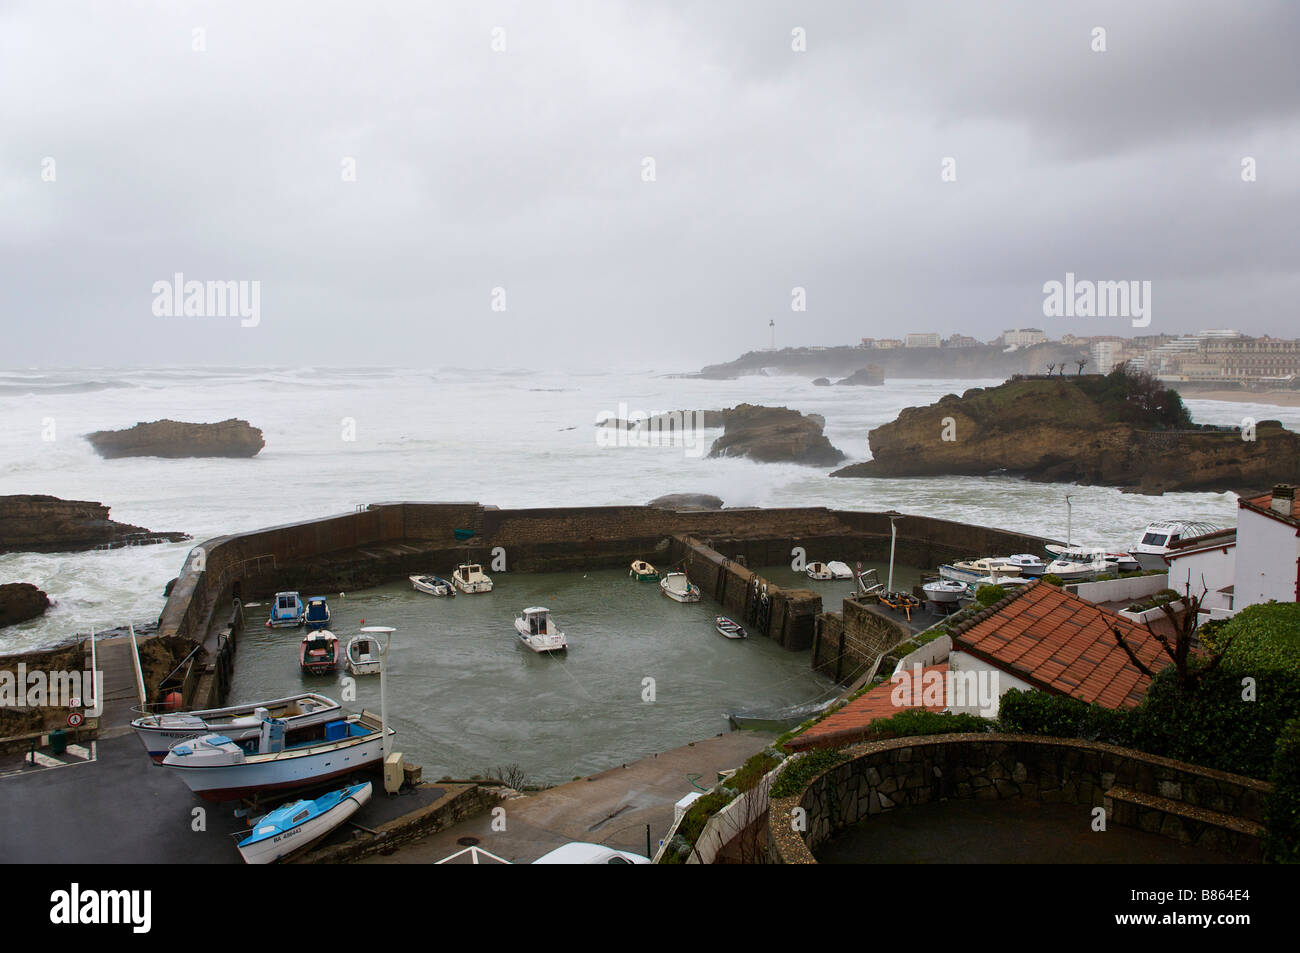 24 january 2009 KLaus storm in Biarritz the old harbour Pays Basque France - Stock Image